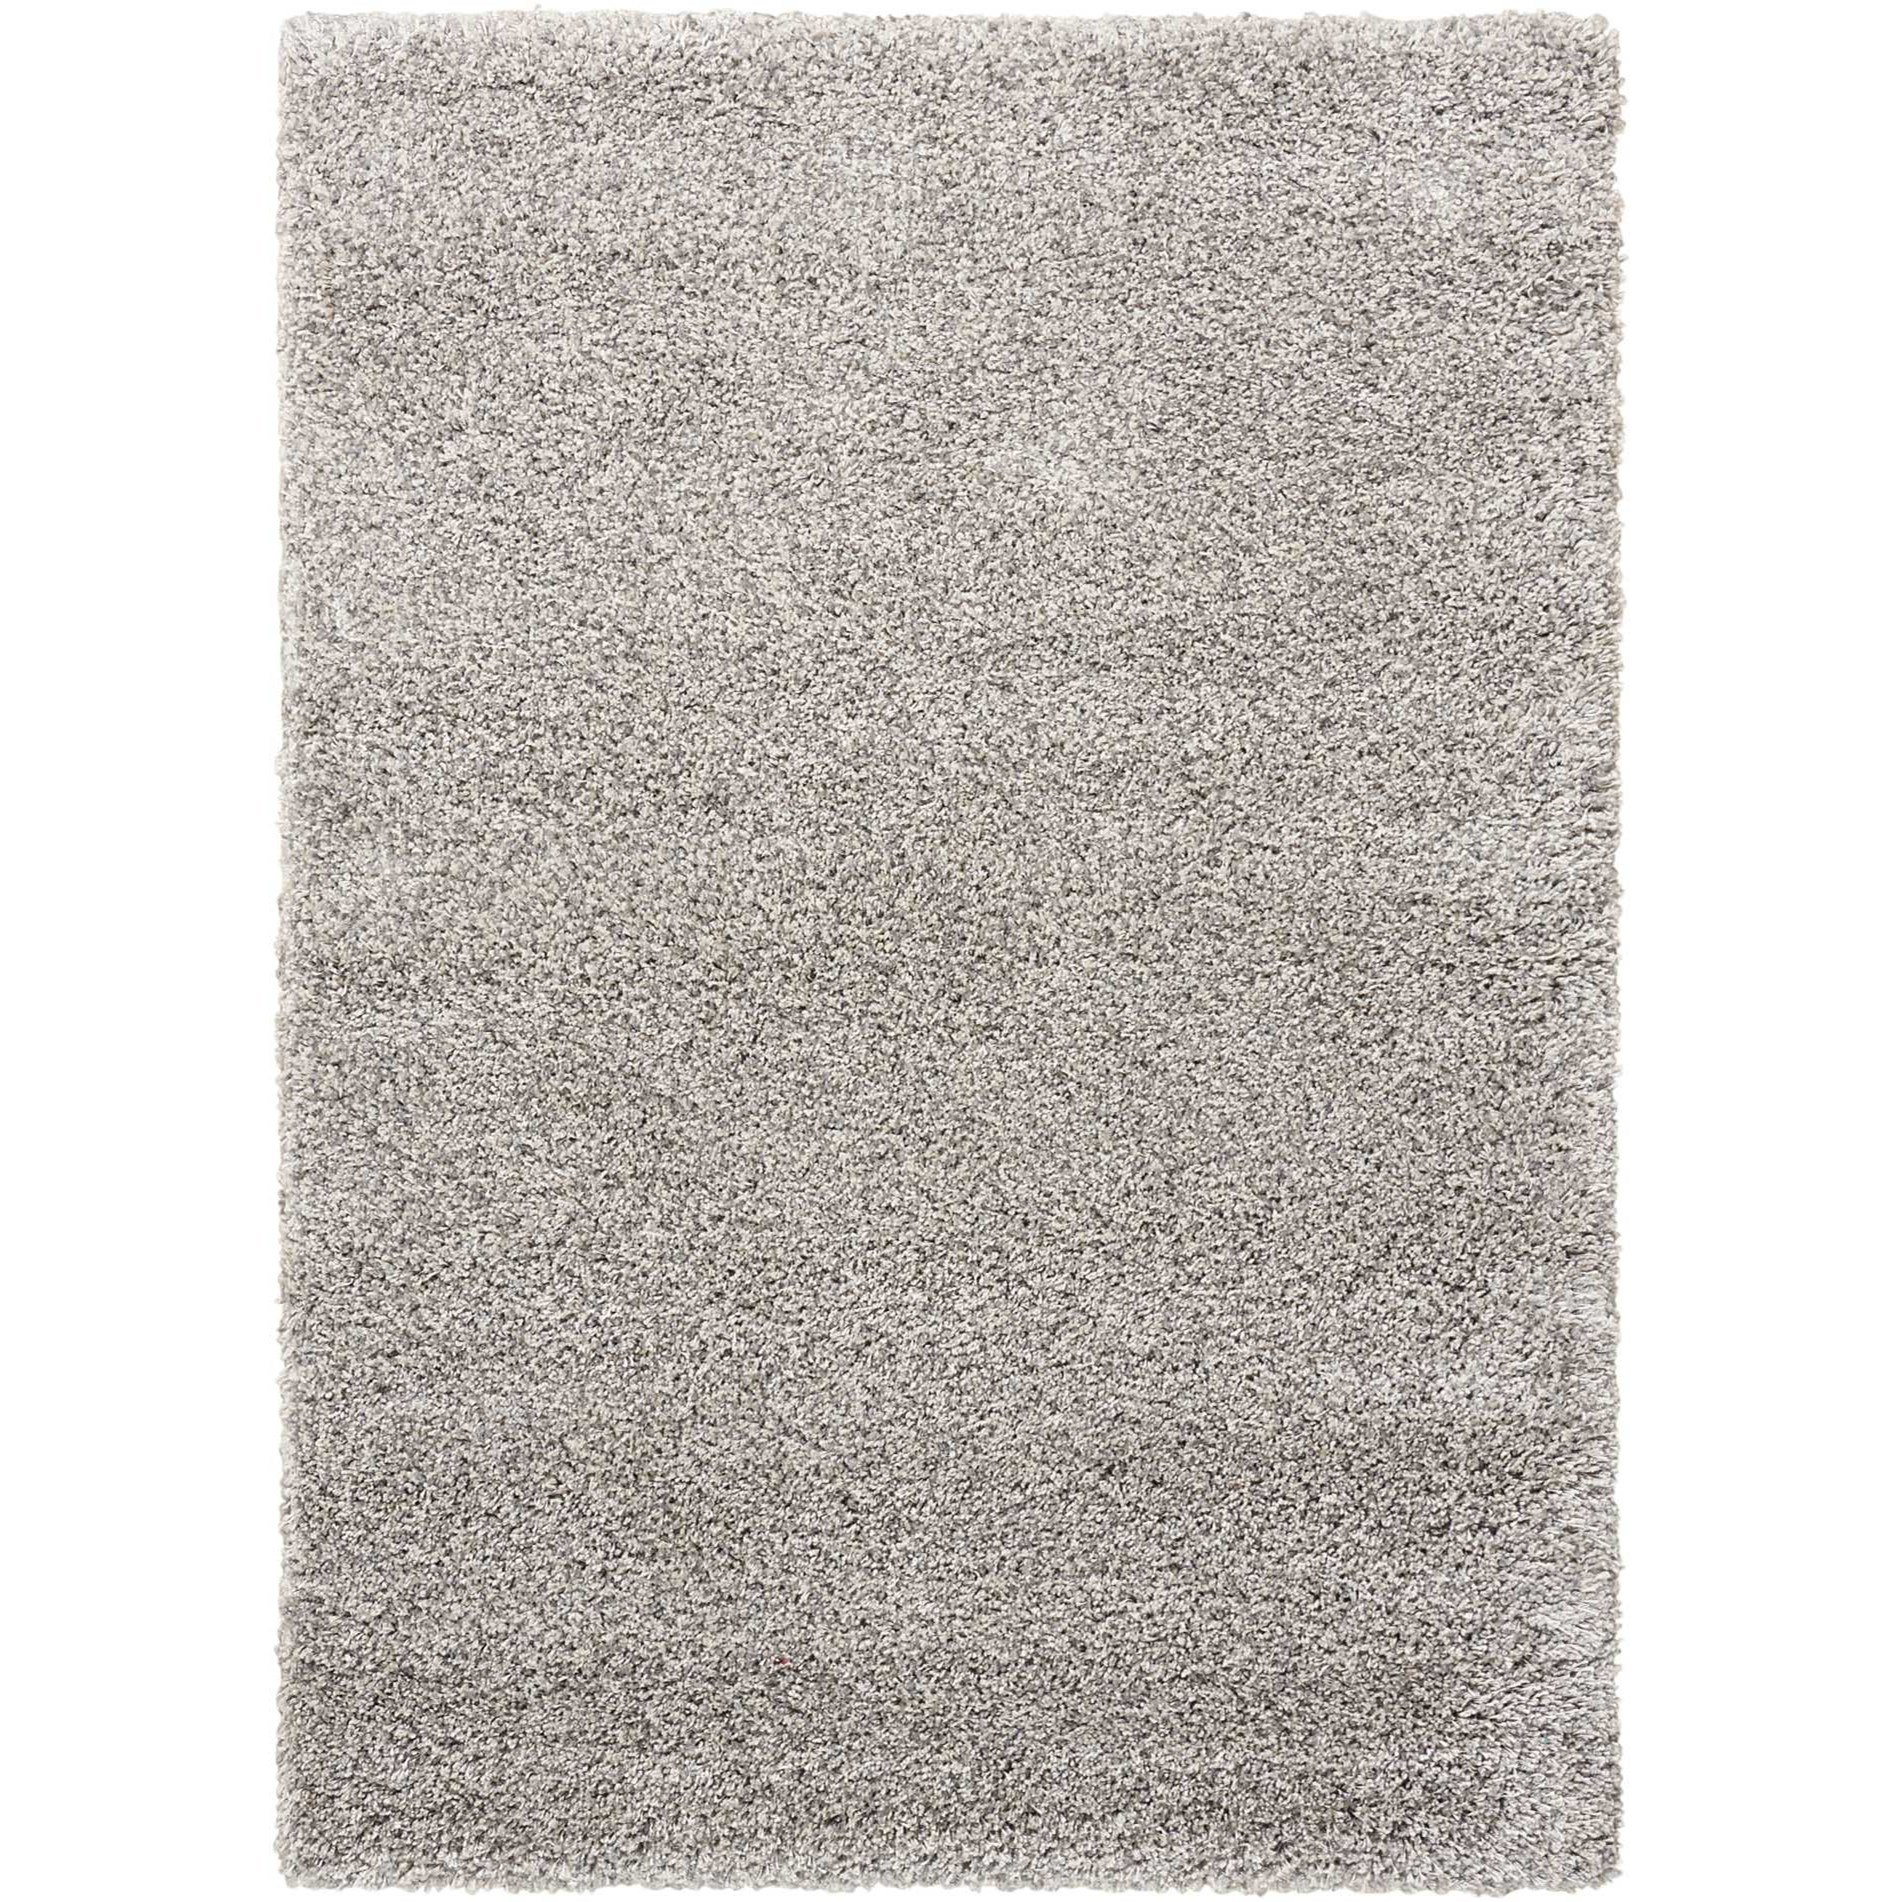 "Amore 3'11"" x 5'11"" Lt Grey Rectangle Rug by Nourison at Home Collections Furniture"